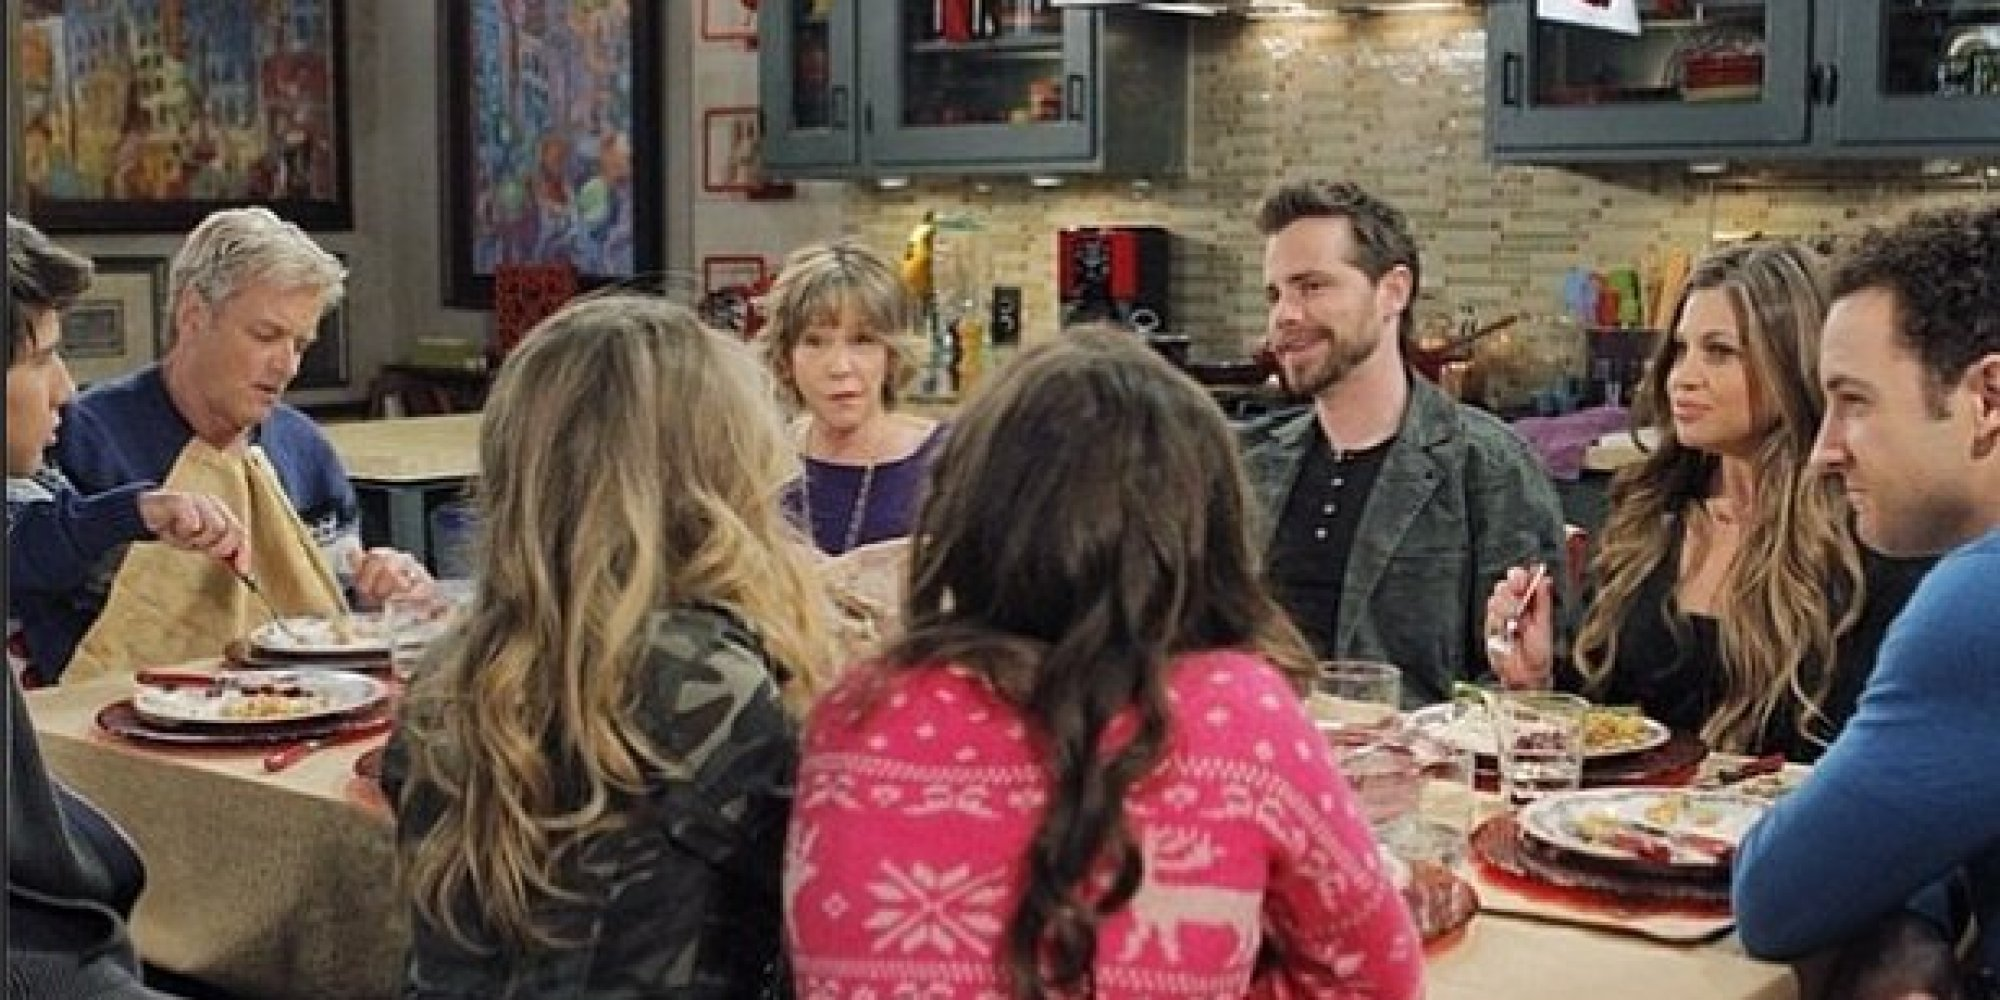 girl meets world show 2013 Browse through and take thousands of girl meet world quizzes find out which character you are from girl meets world, a hit show on disney channel 2013.